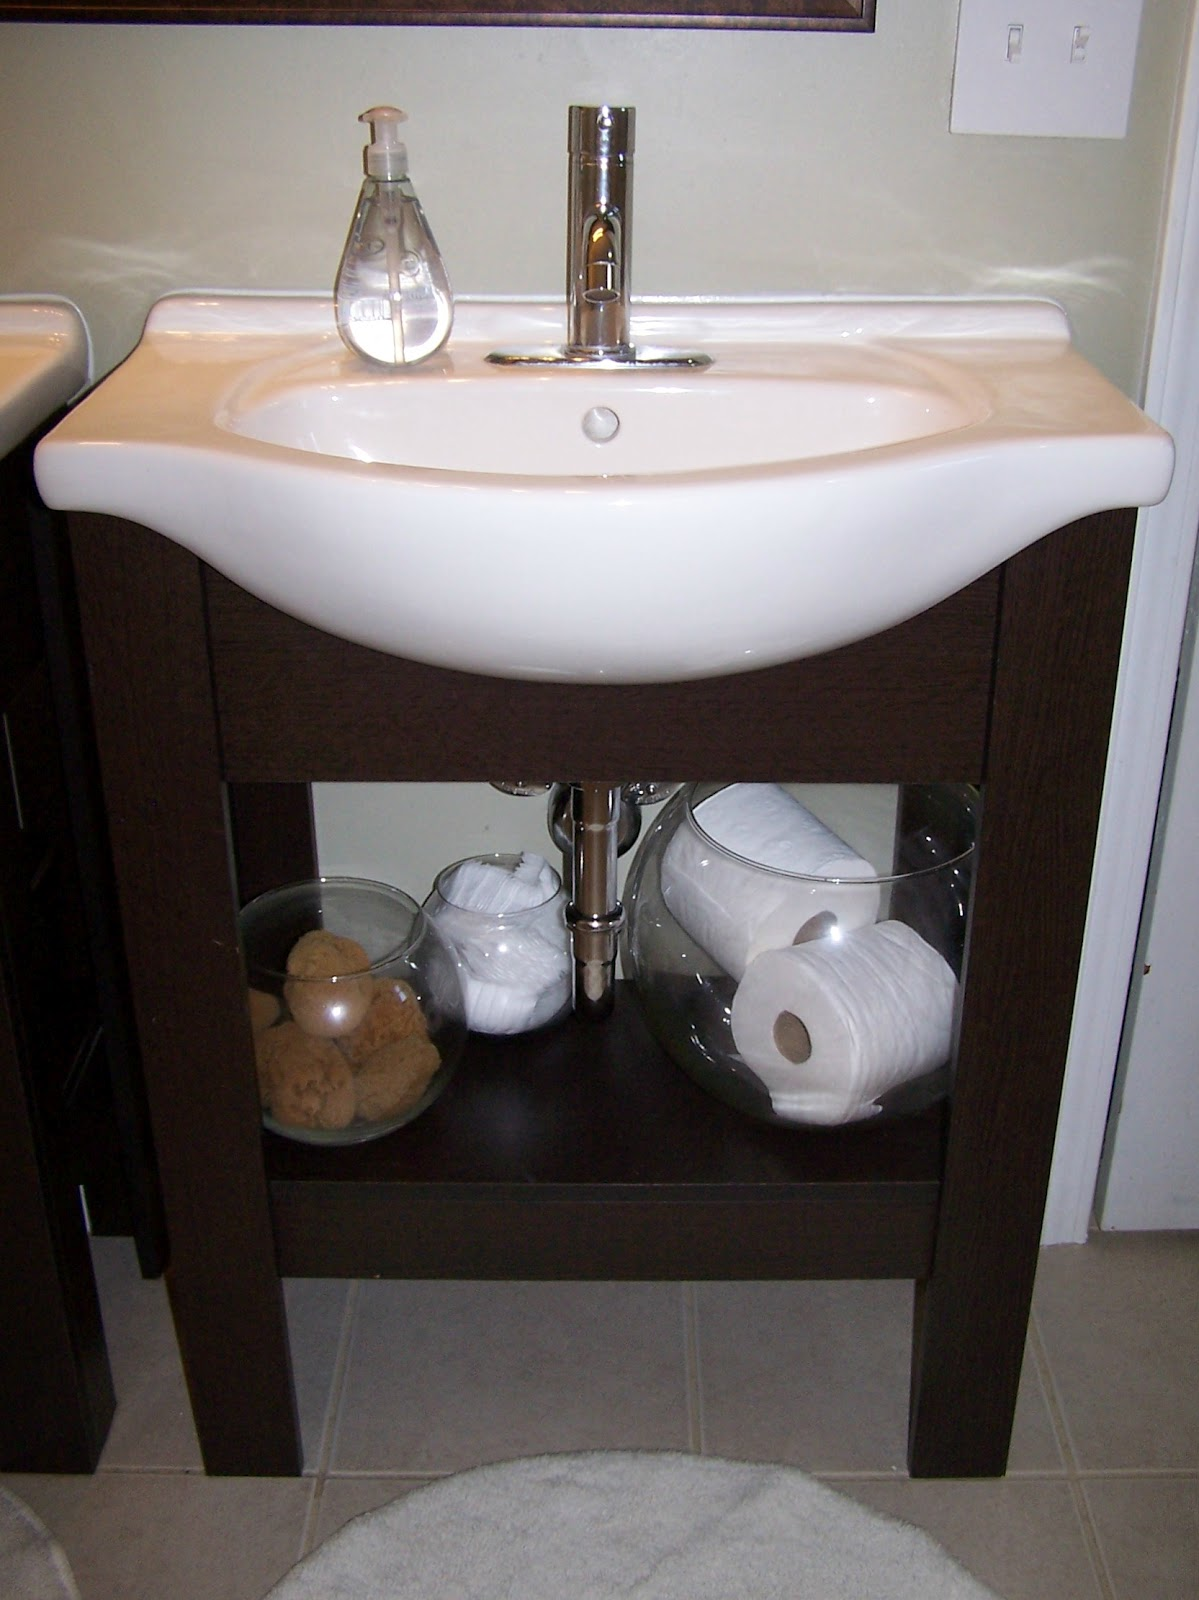 Bathroom Sink Outlet : ... sinks, install new toilet, replace outlet covers and bathroom fixtures